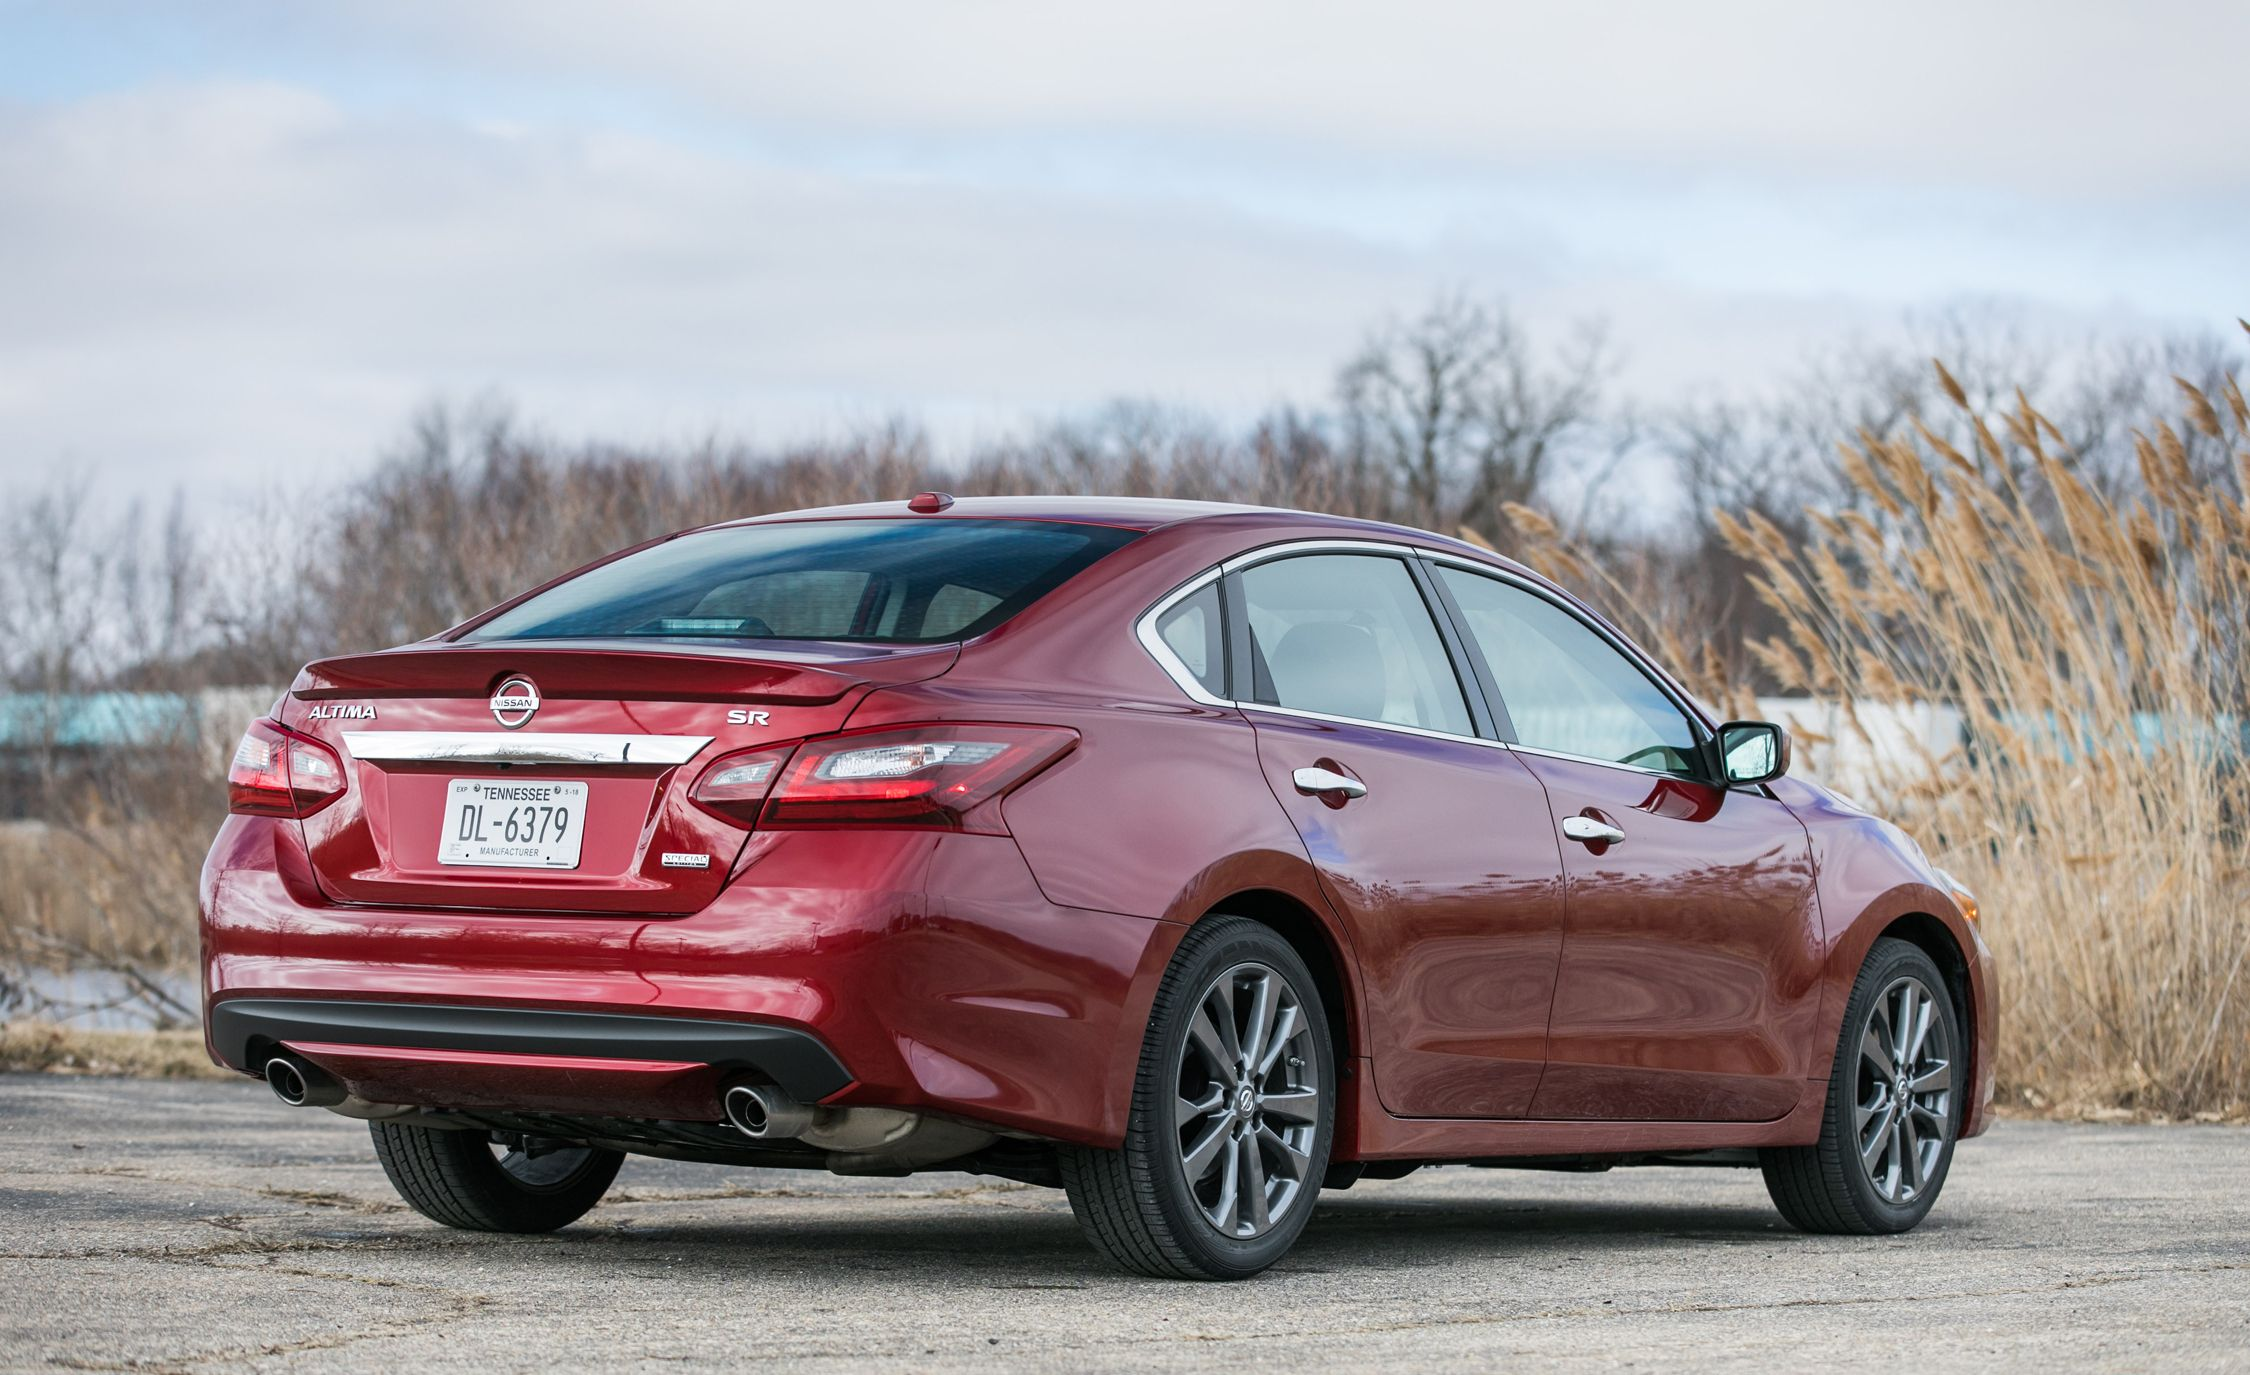 Mazda 3 Cargo Space Dimensions >> 2019 Nissan Altima Photos and Info | News | Car and Driver